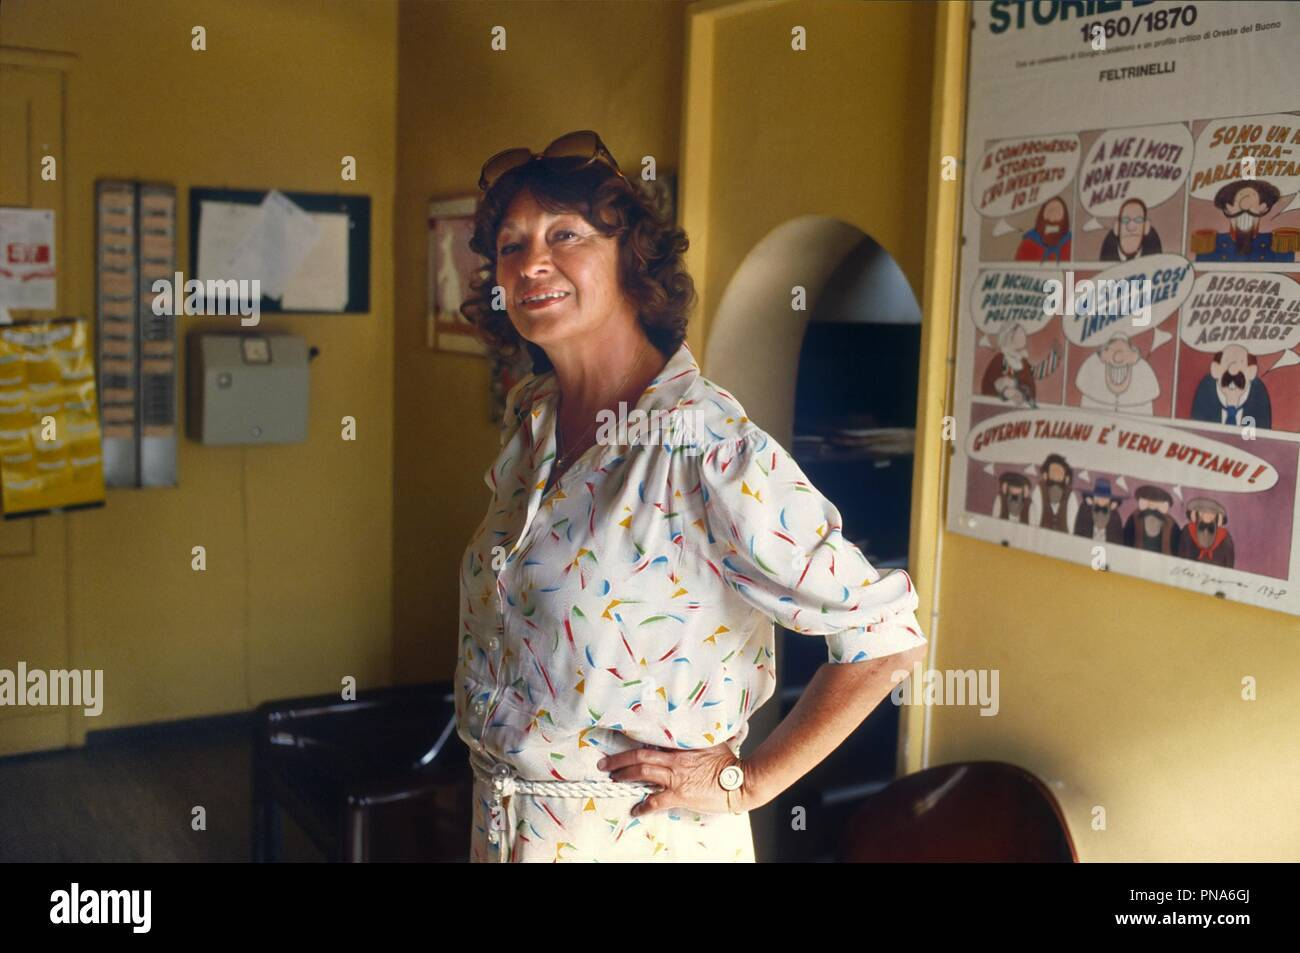 Inge Feltrinelli, director of the homonymous Italian publishing house, in her house in Milan in the 80s - Stock Image